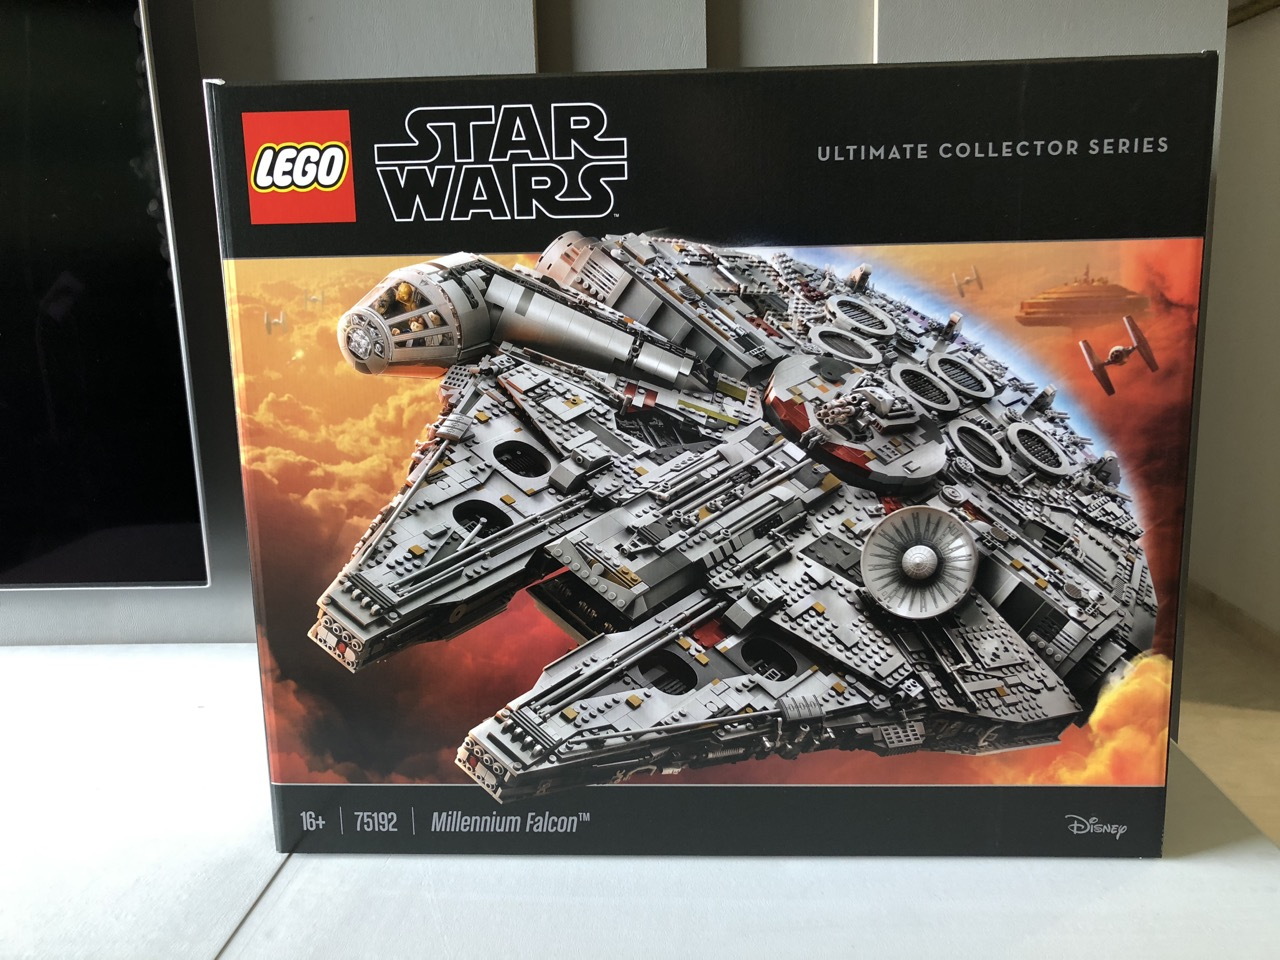 Millennium Falcon Coffee Table Brick Brains Star Wars Lego Watch Out For The Ultimate Millennium Falcon 75192